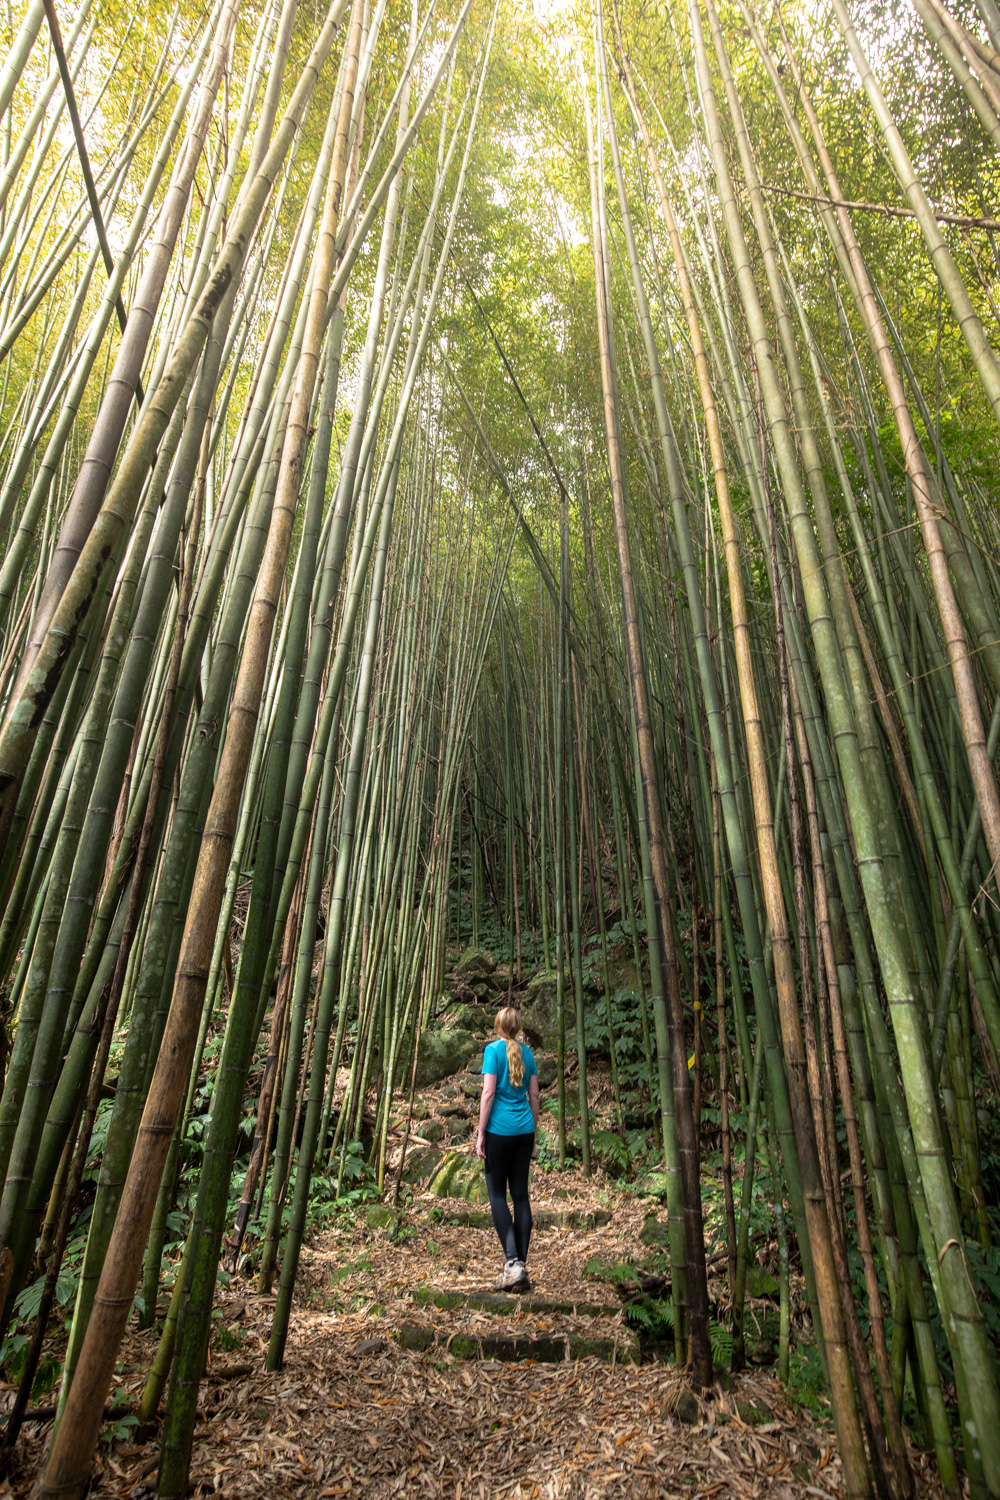 Fenrui Bamboo forests